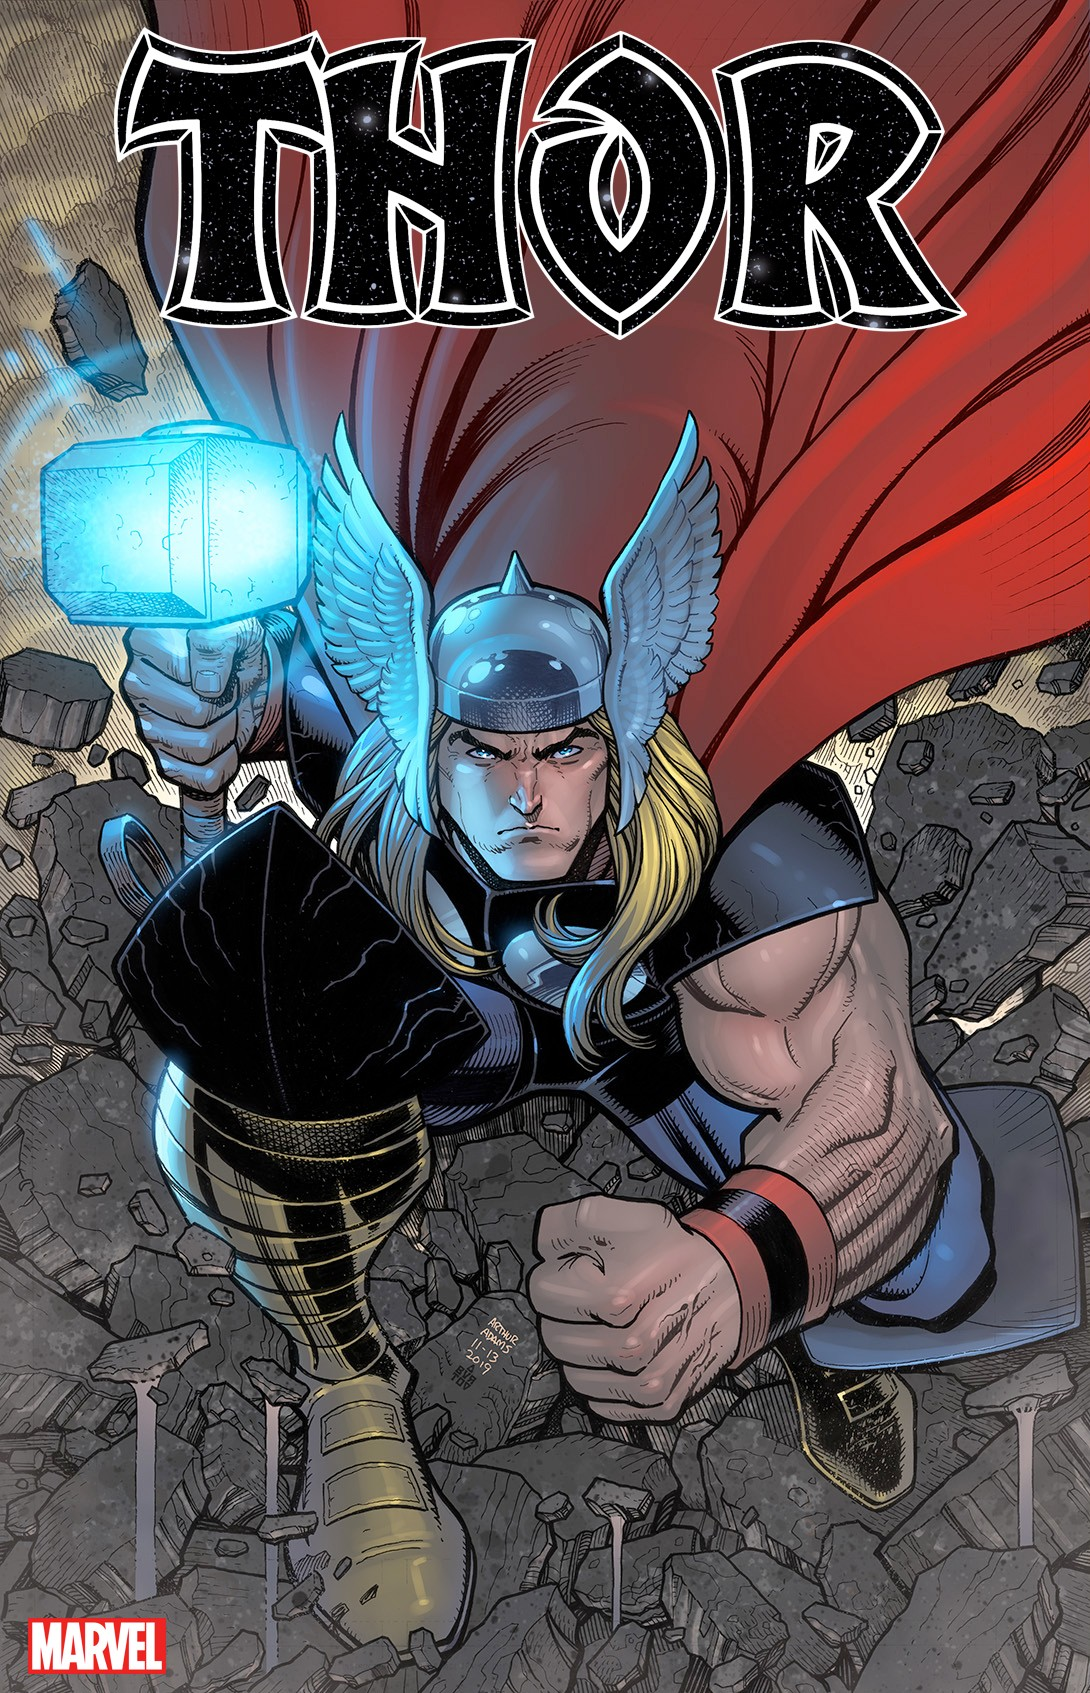 Arthur Adams' Thor #1 Variant Cover is Revealed